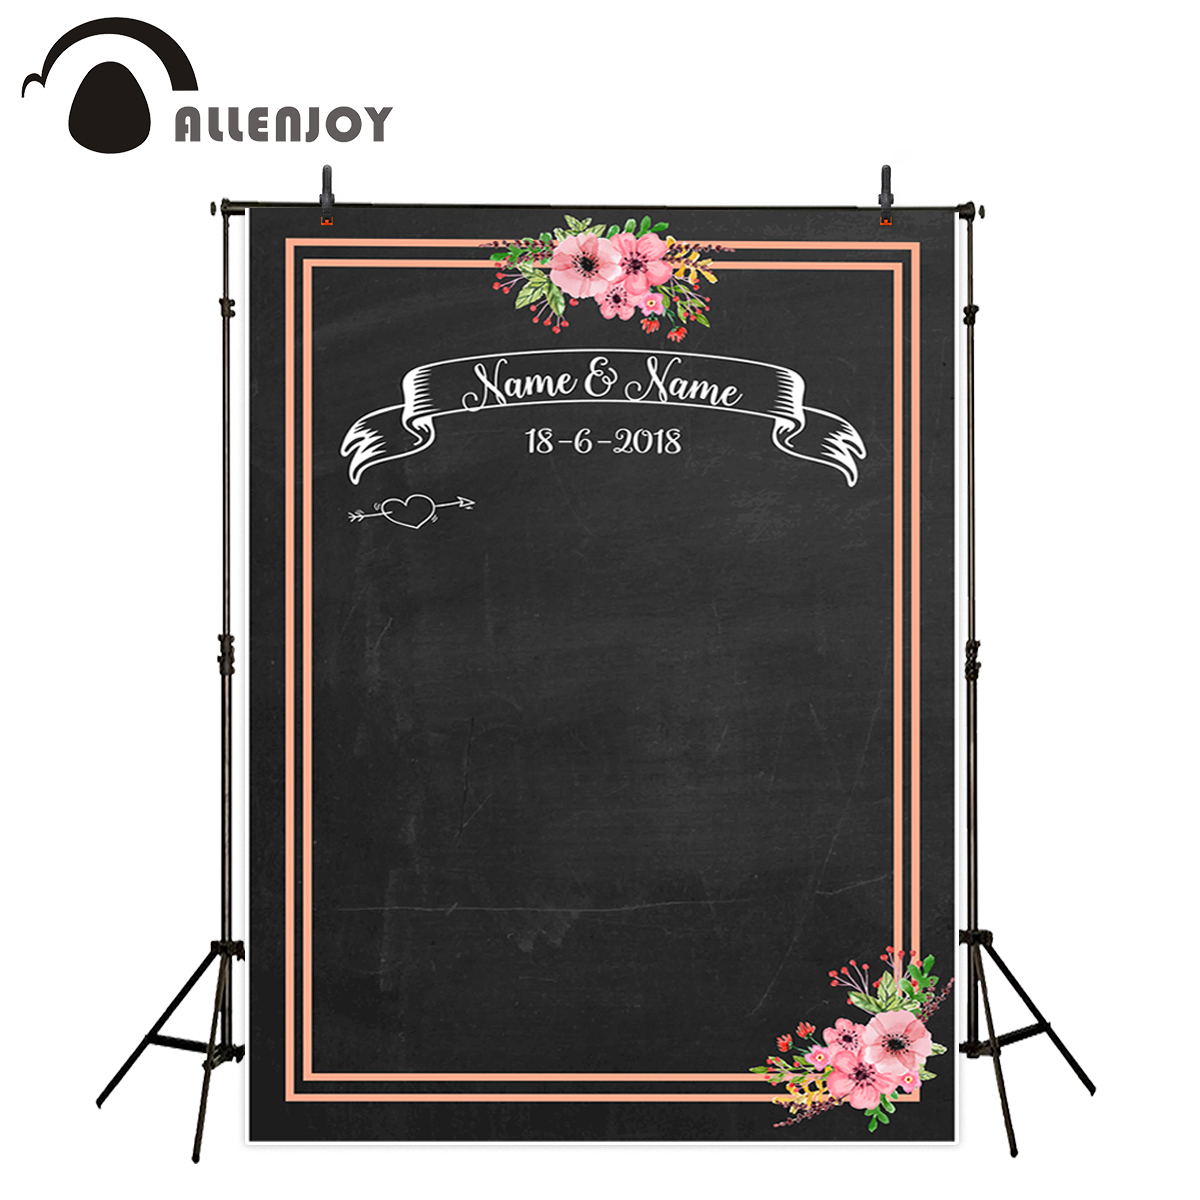 Allenjoy backdrop for photographic studio Chalkboard flowers romantic wedding customize background original design photocall